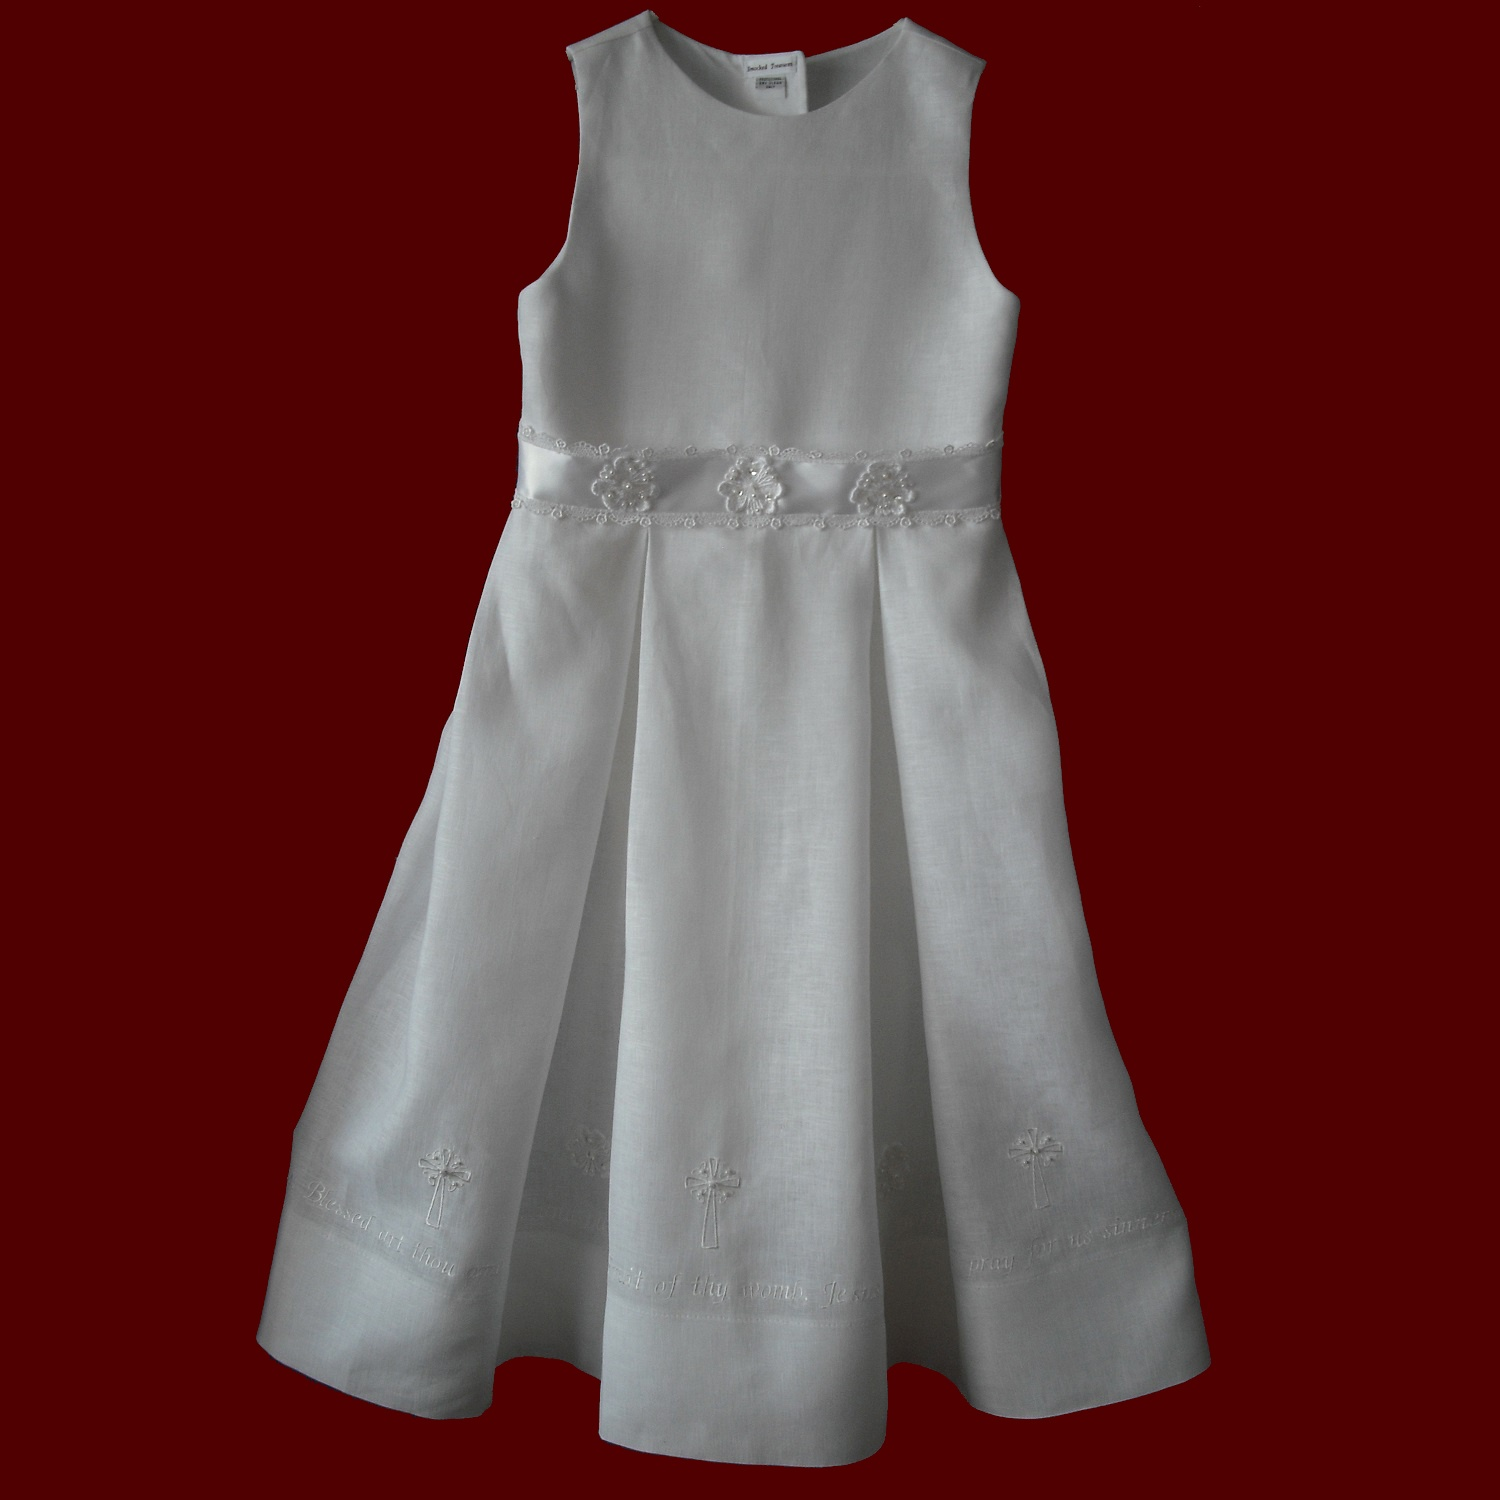 Hail Mary Embroidered Prayer With Crosses Communion Dress